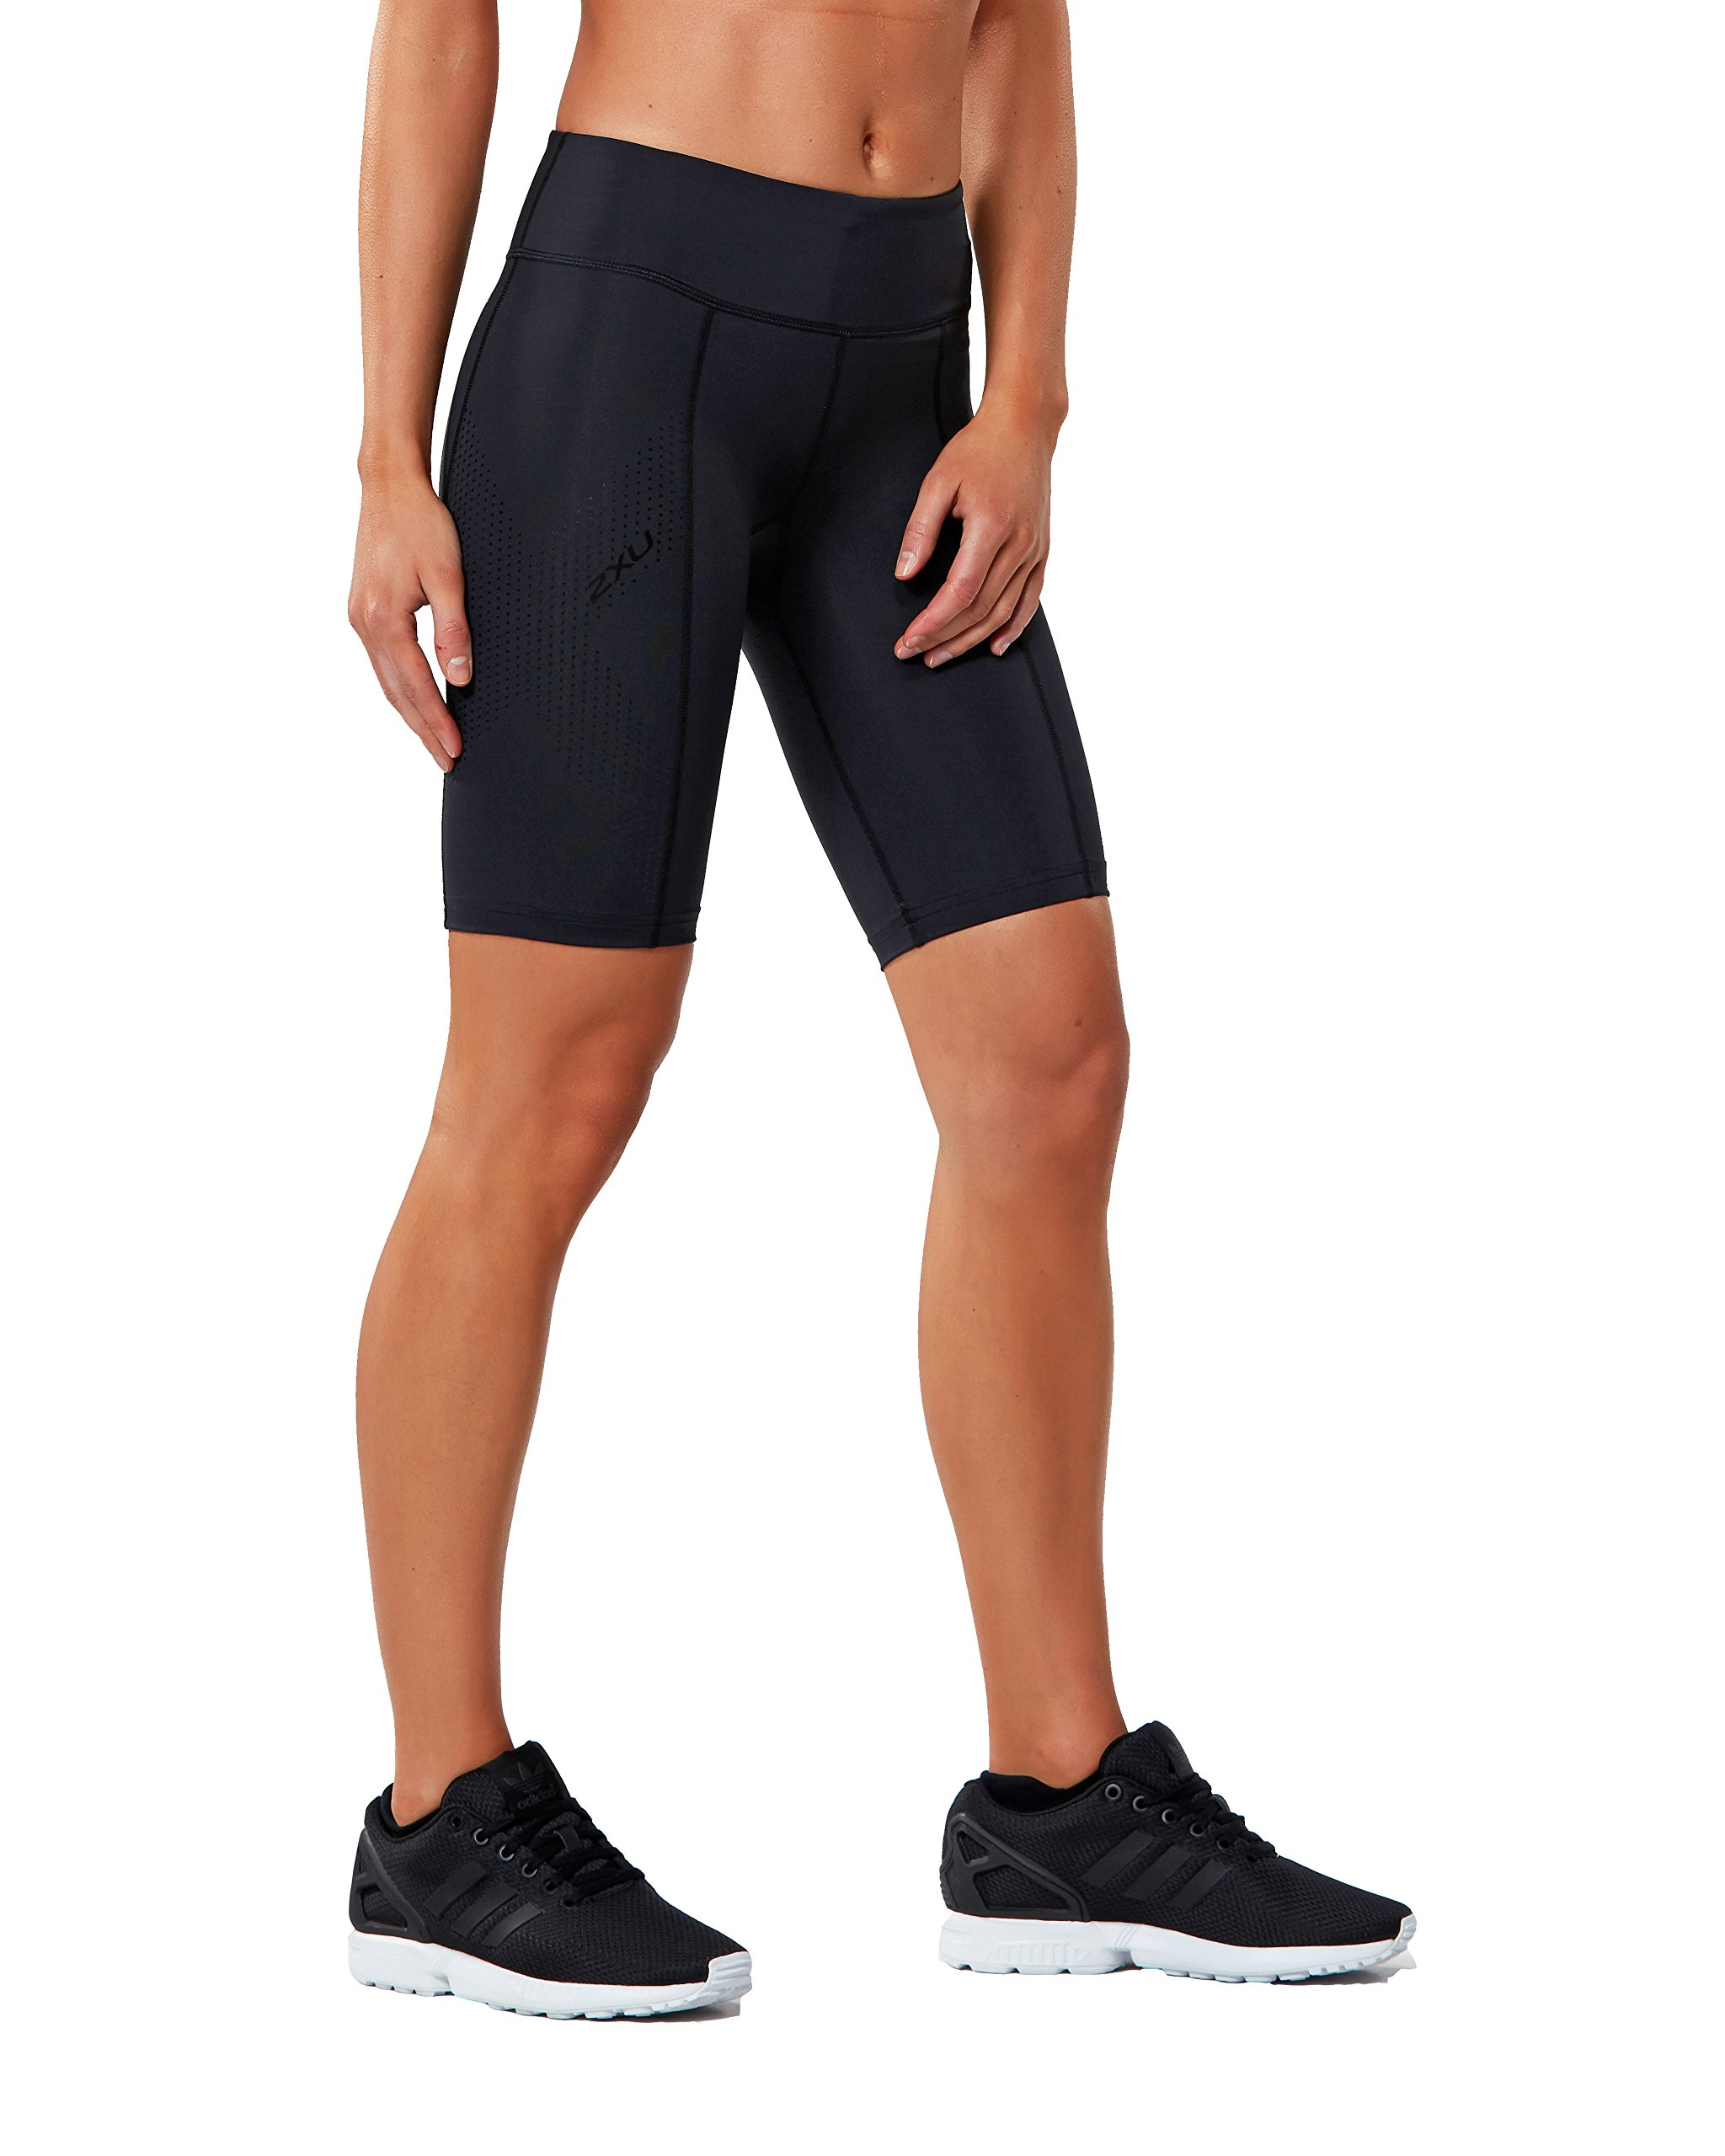 2XU Women's Mid-Rise Athletic Compression Shorts, Black/Dotted Black Logo, Small by 2XU (Image #1)